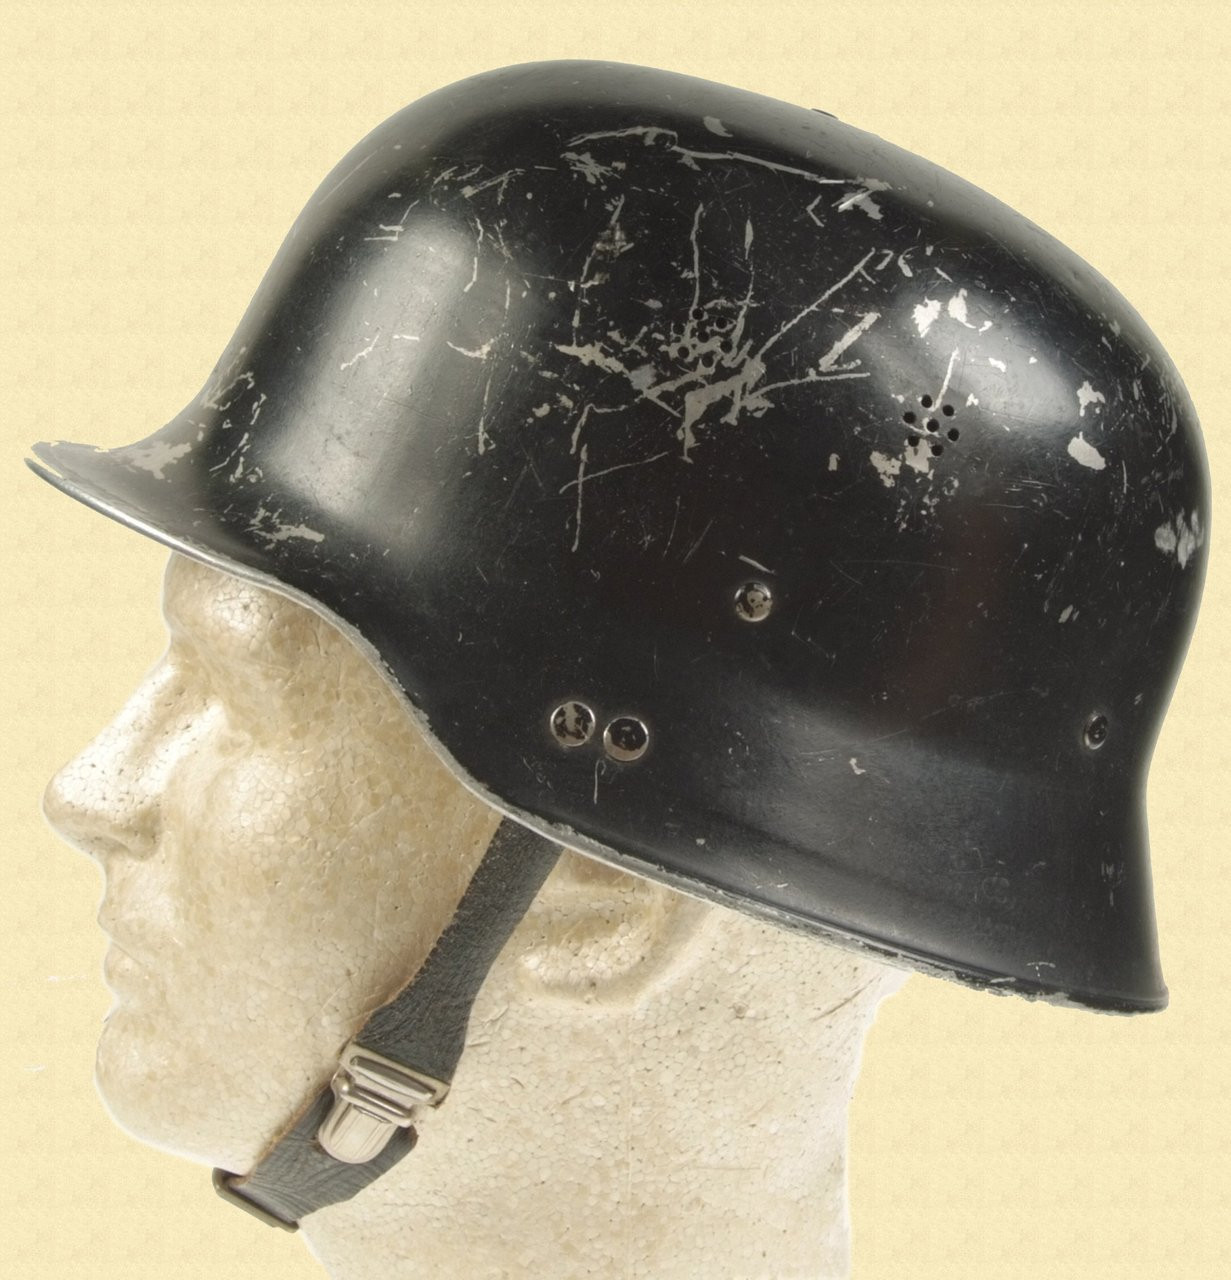 GERMAN WW2 CIVIL DEFENSE HELMET - C11670